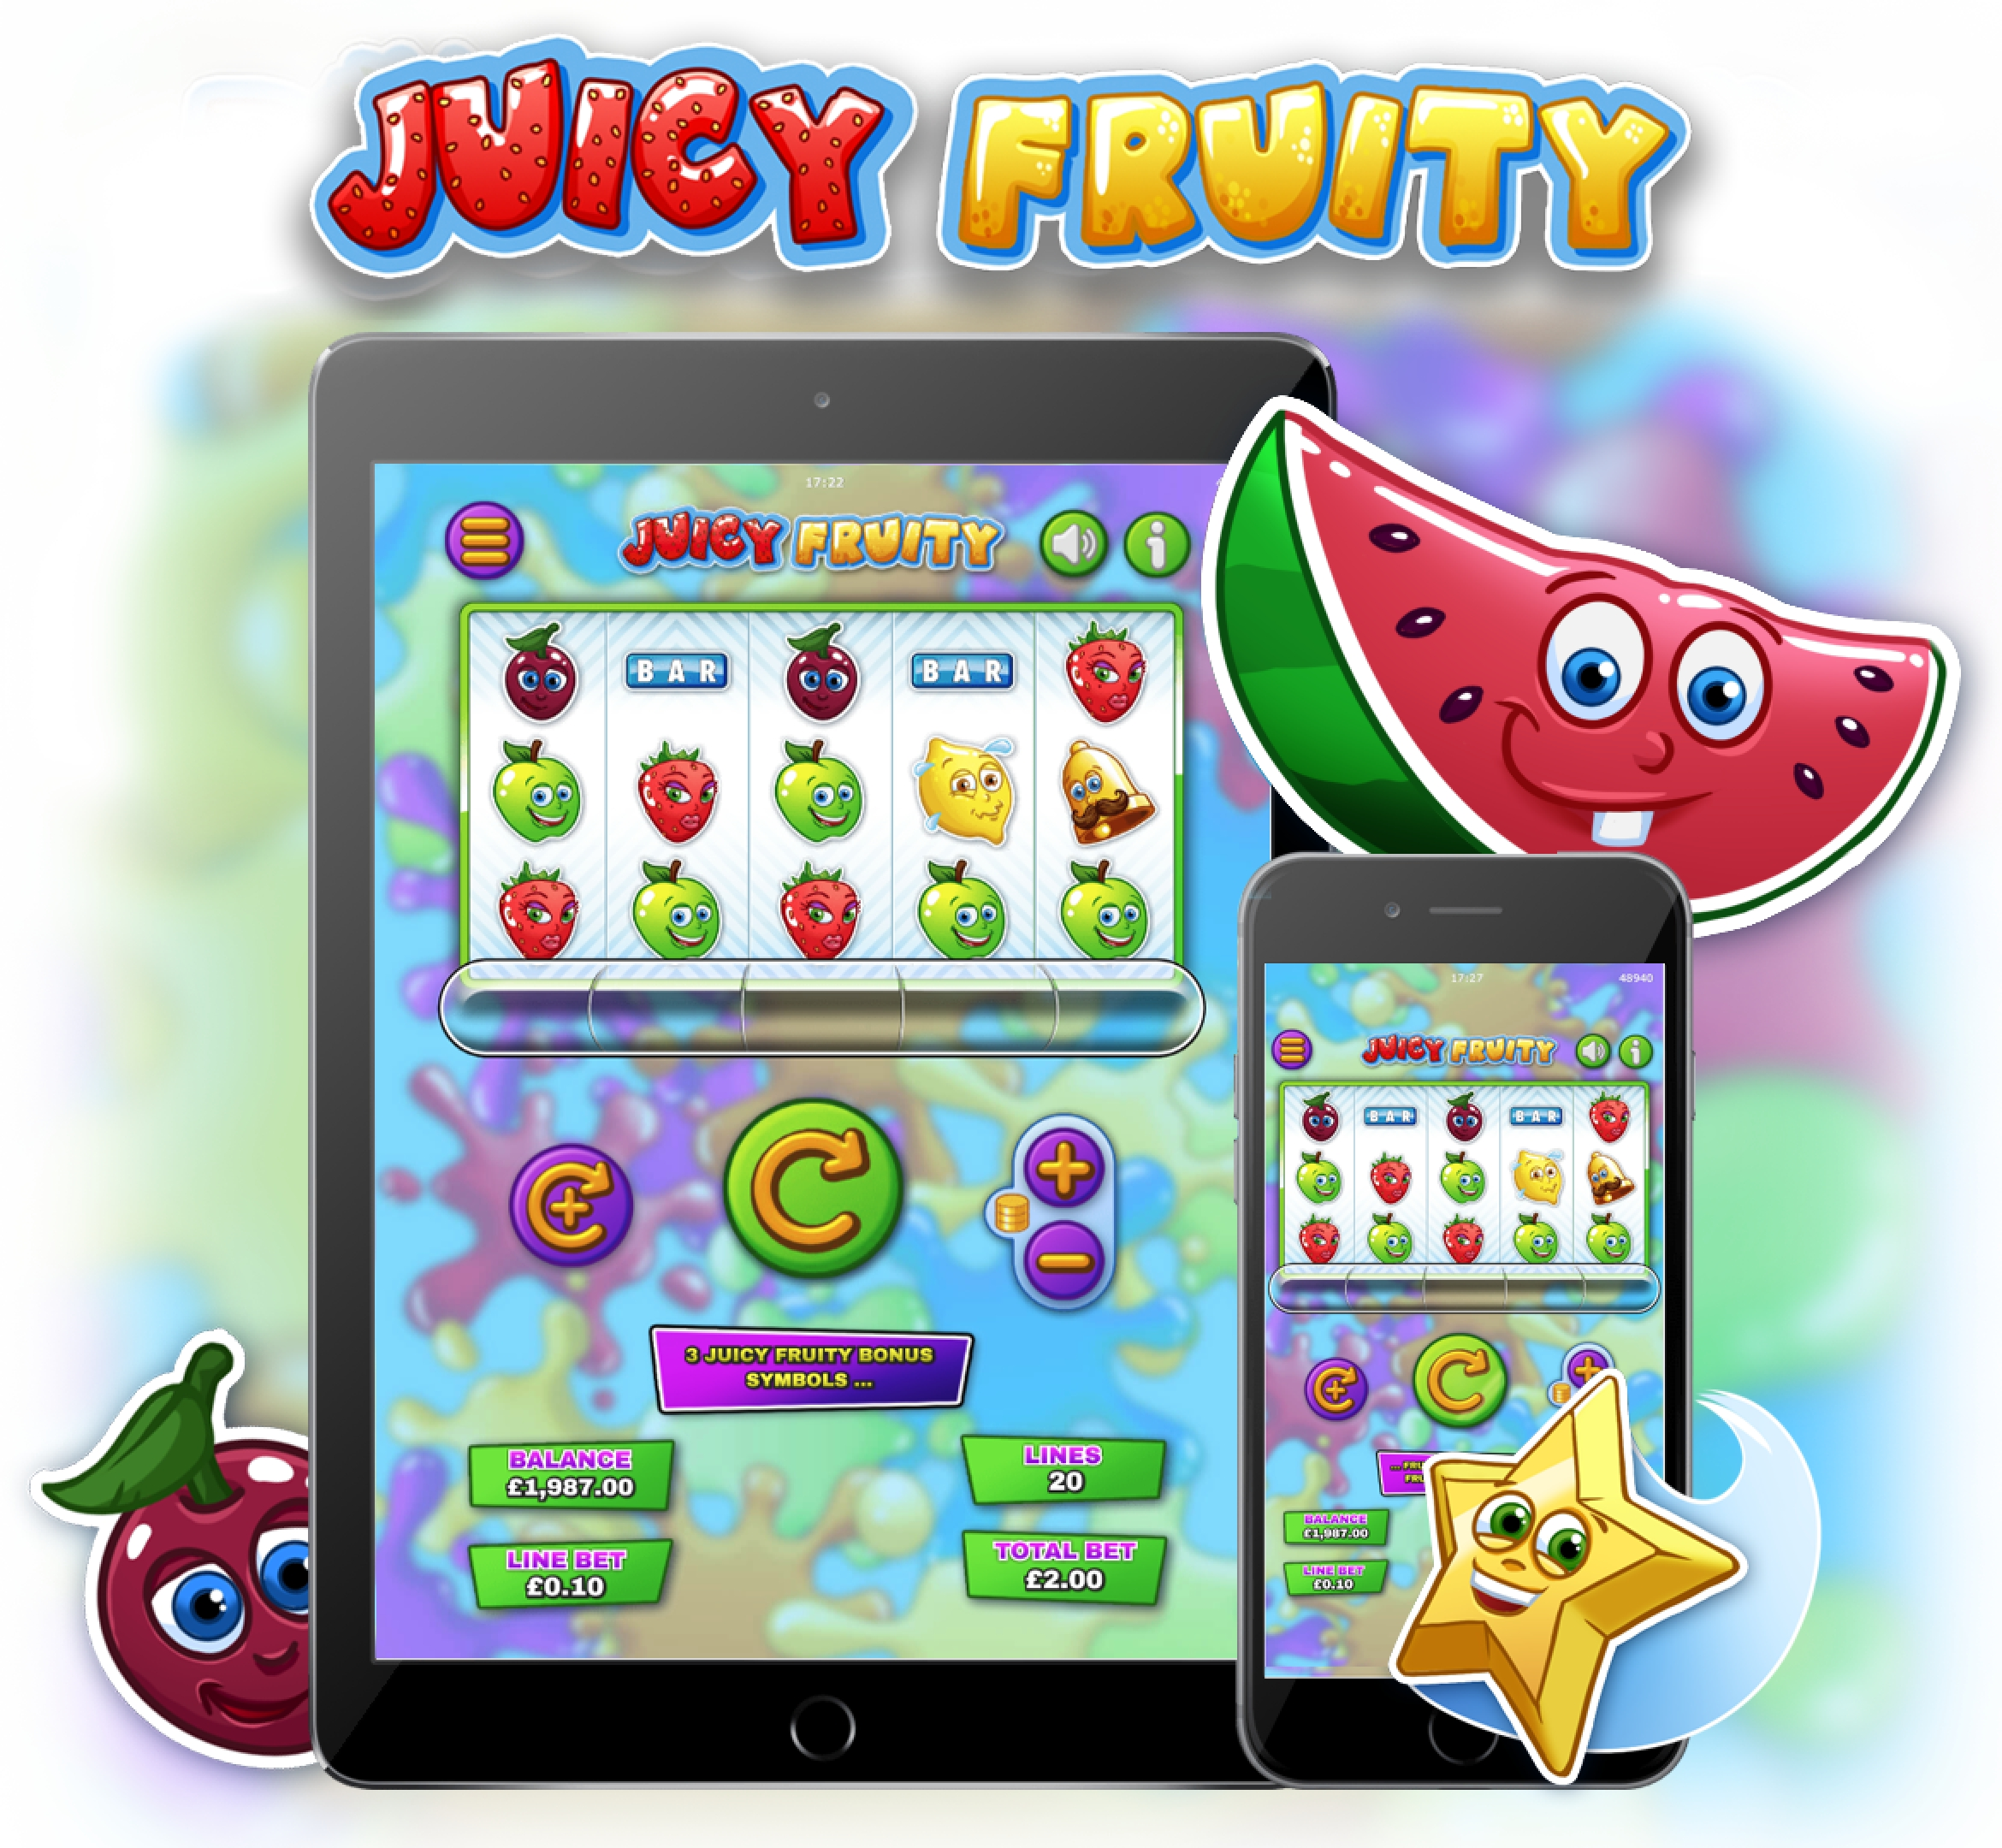 The Juicy Fruity Online Slot Demo Game by Mutuel Play